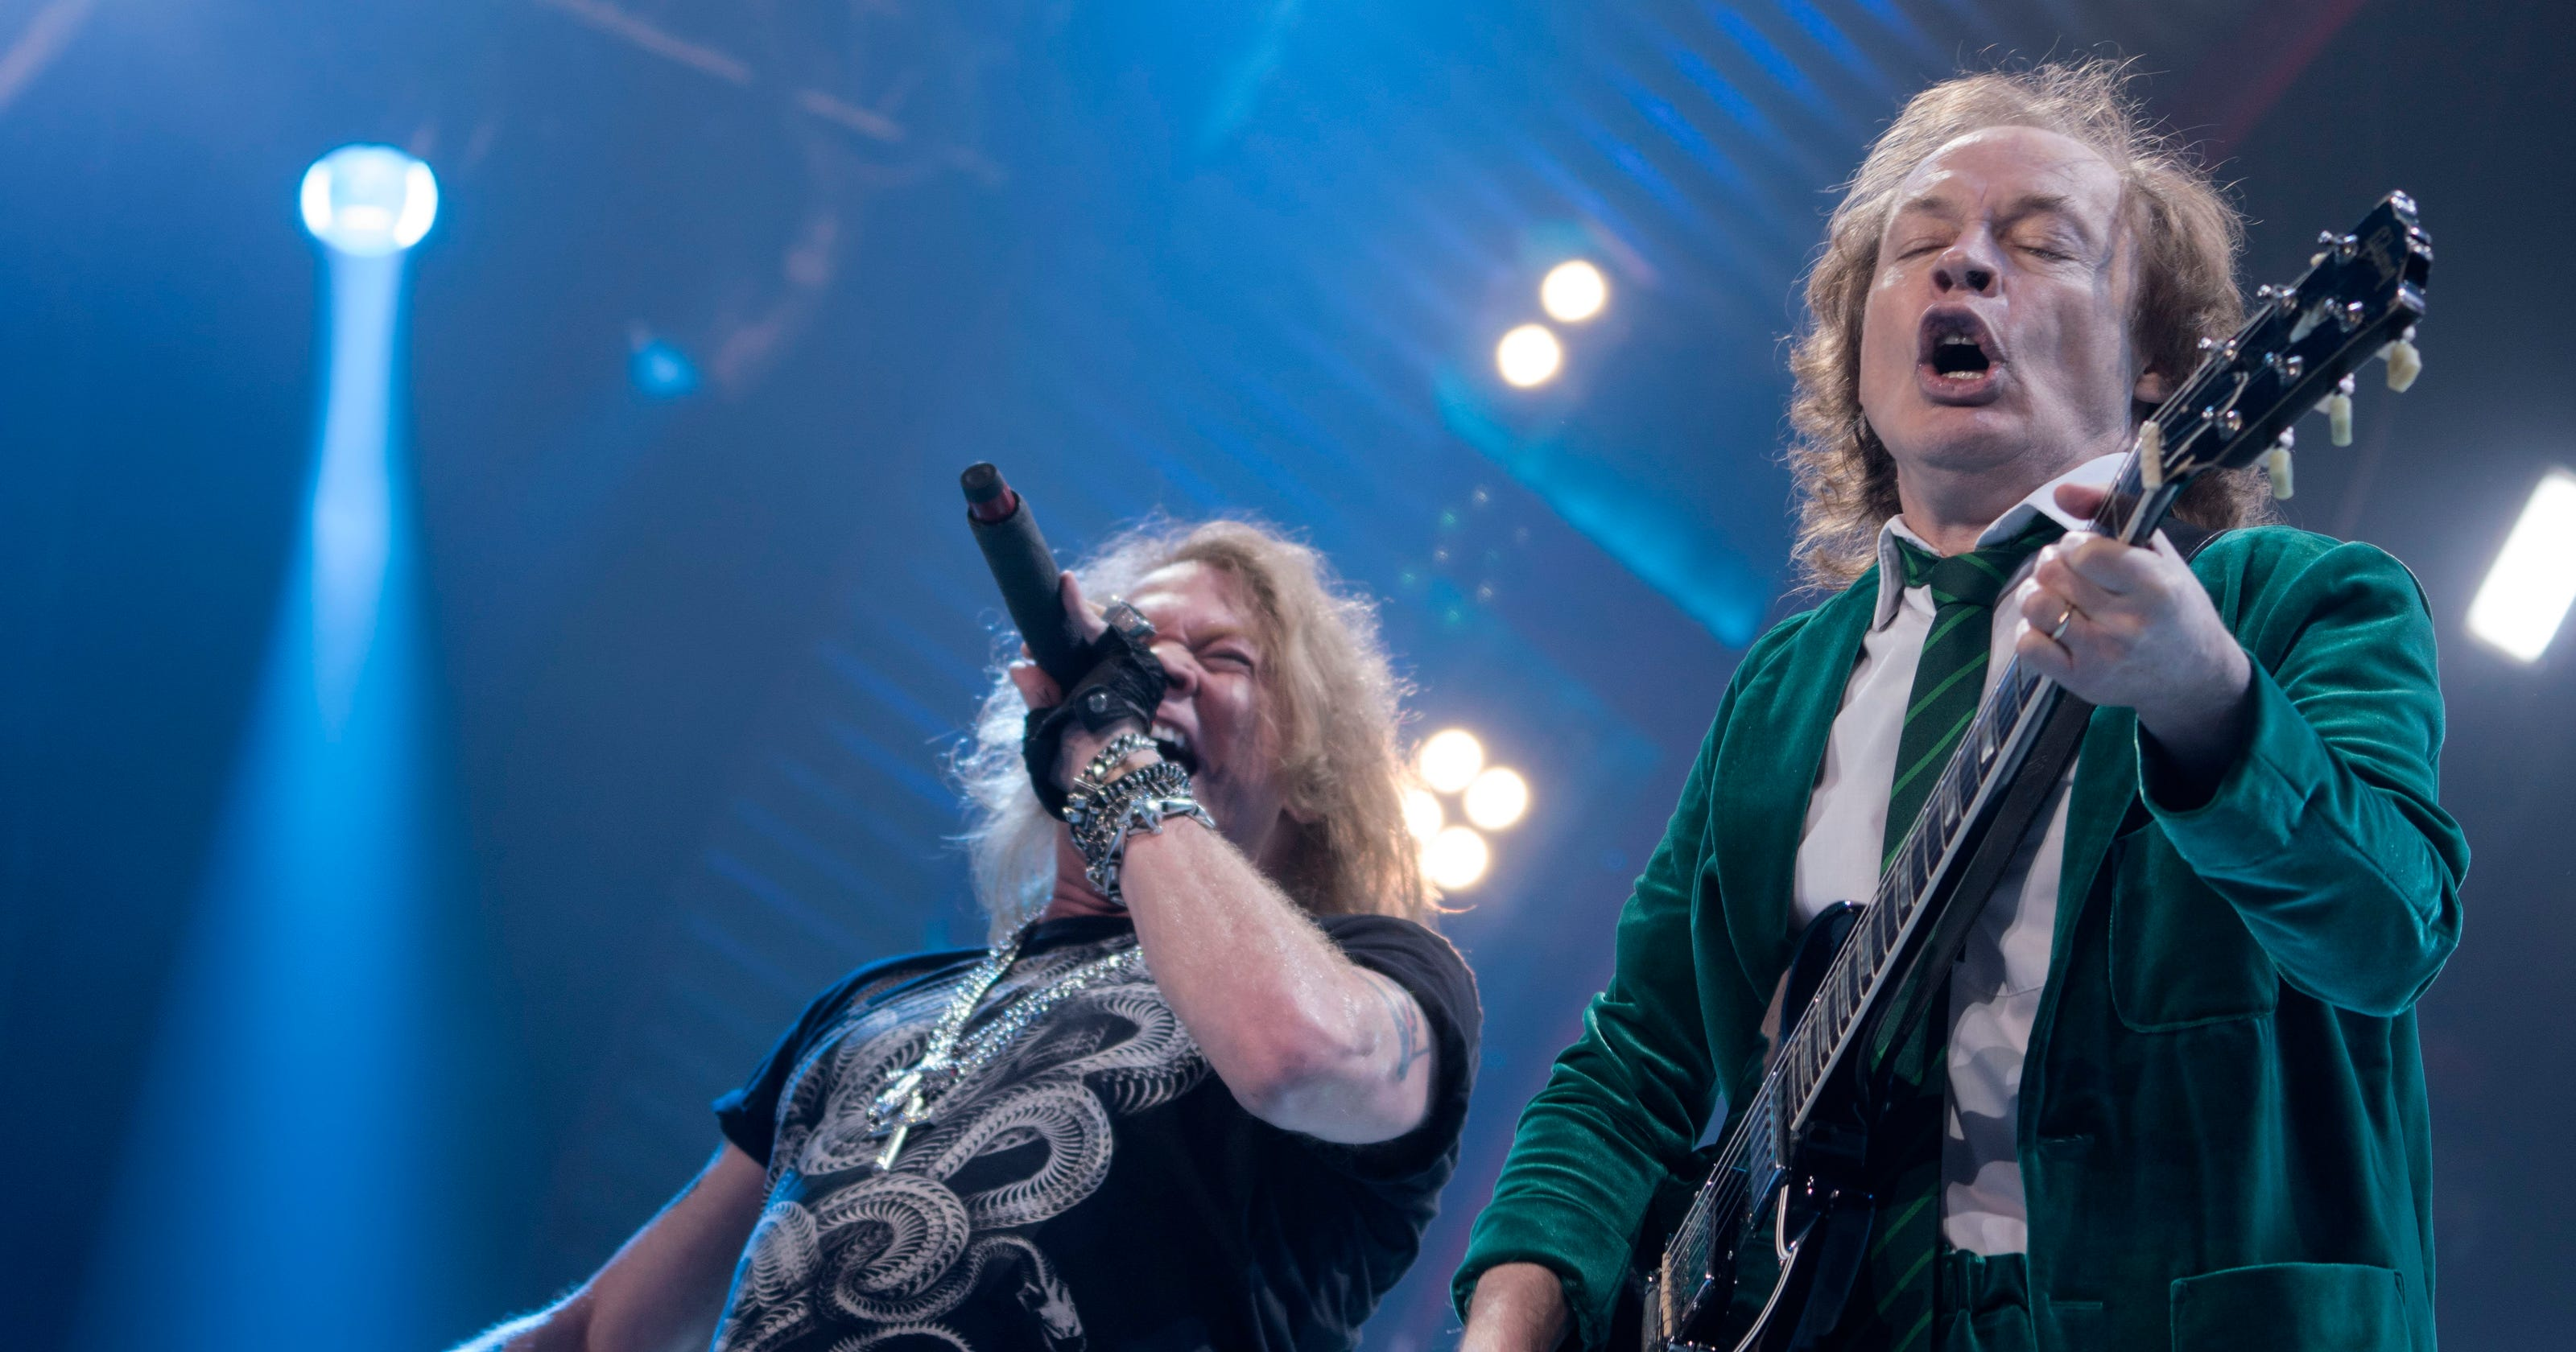 AC/DC makes rock \'n\' roll thunder with an impressive Axl Rose